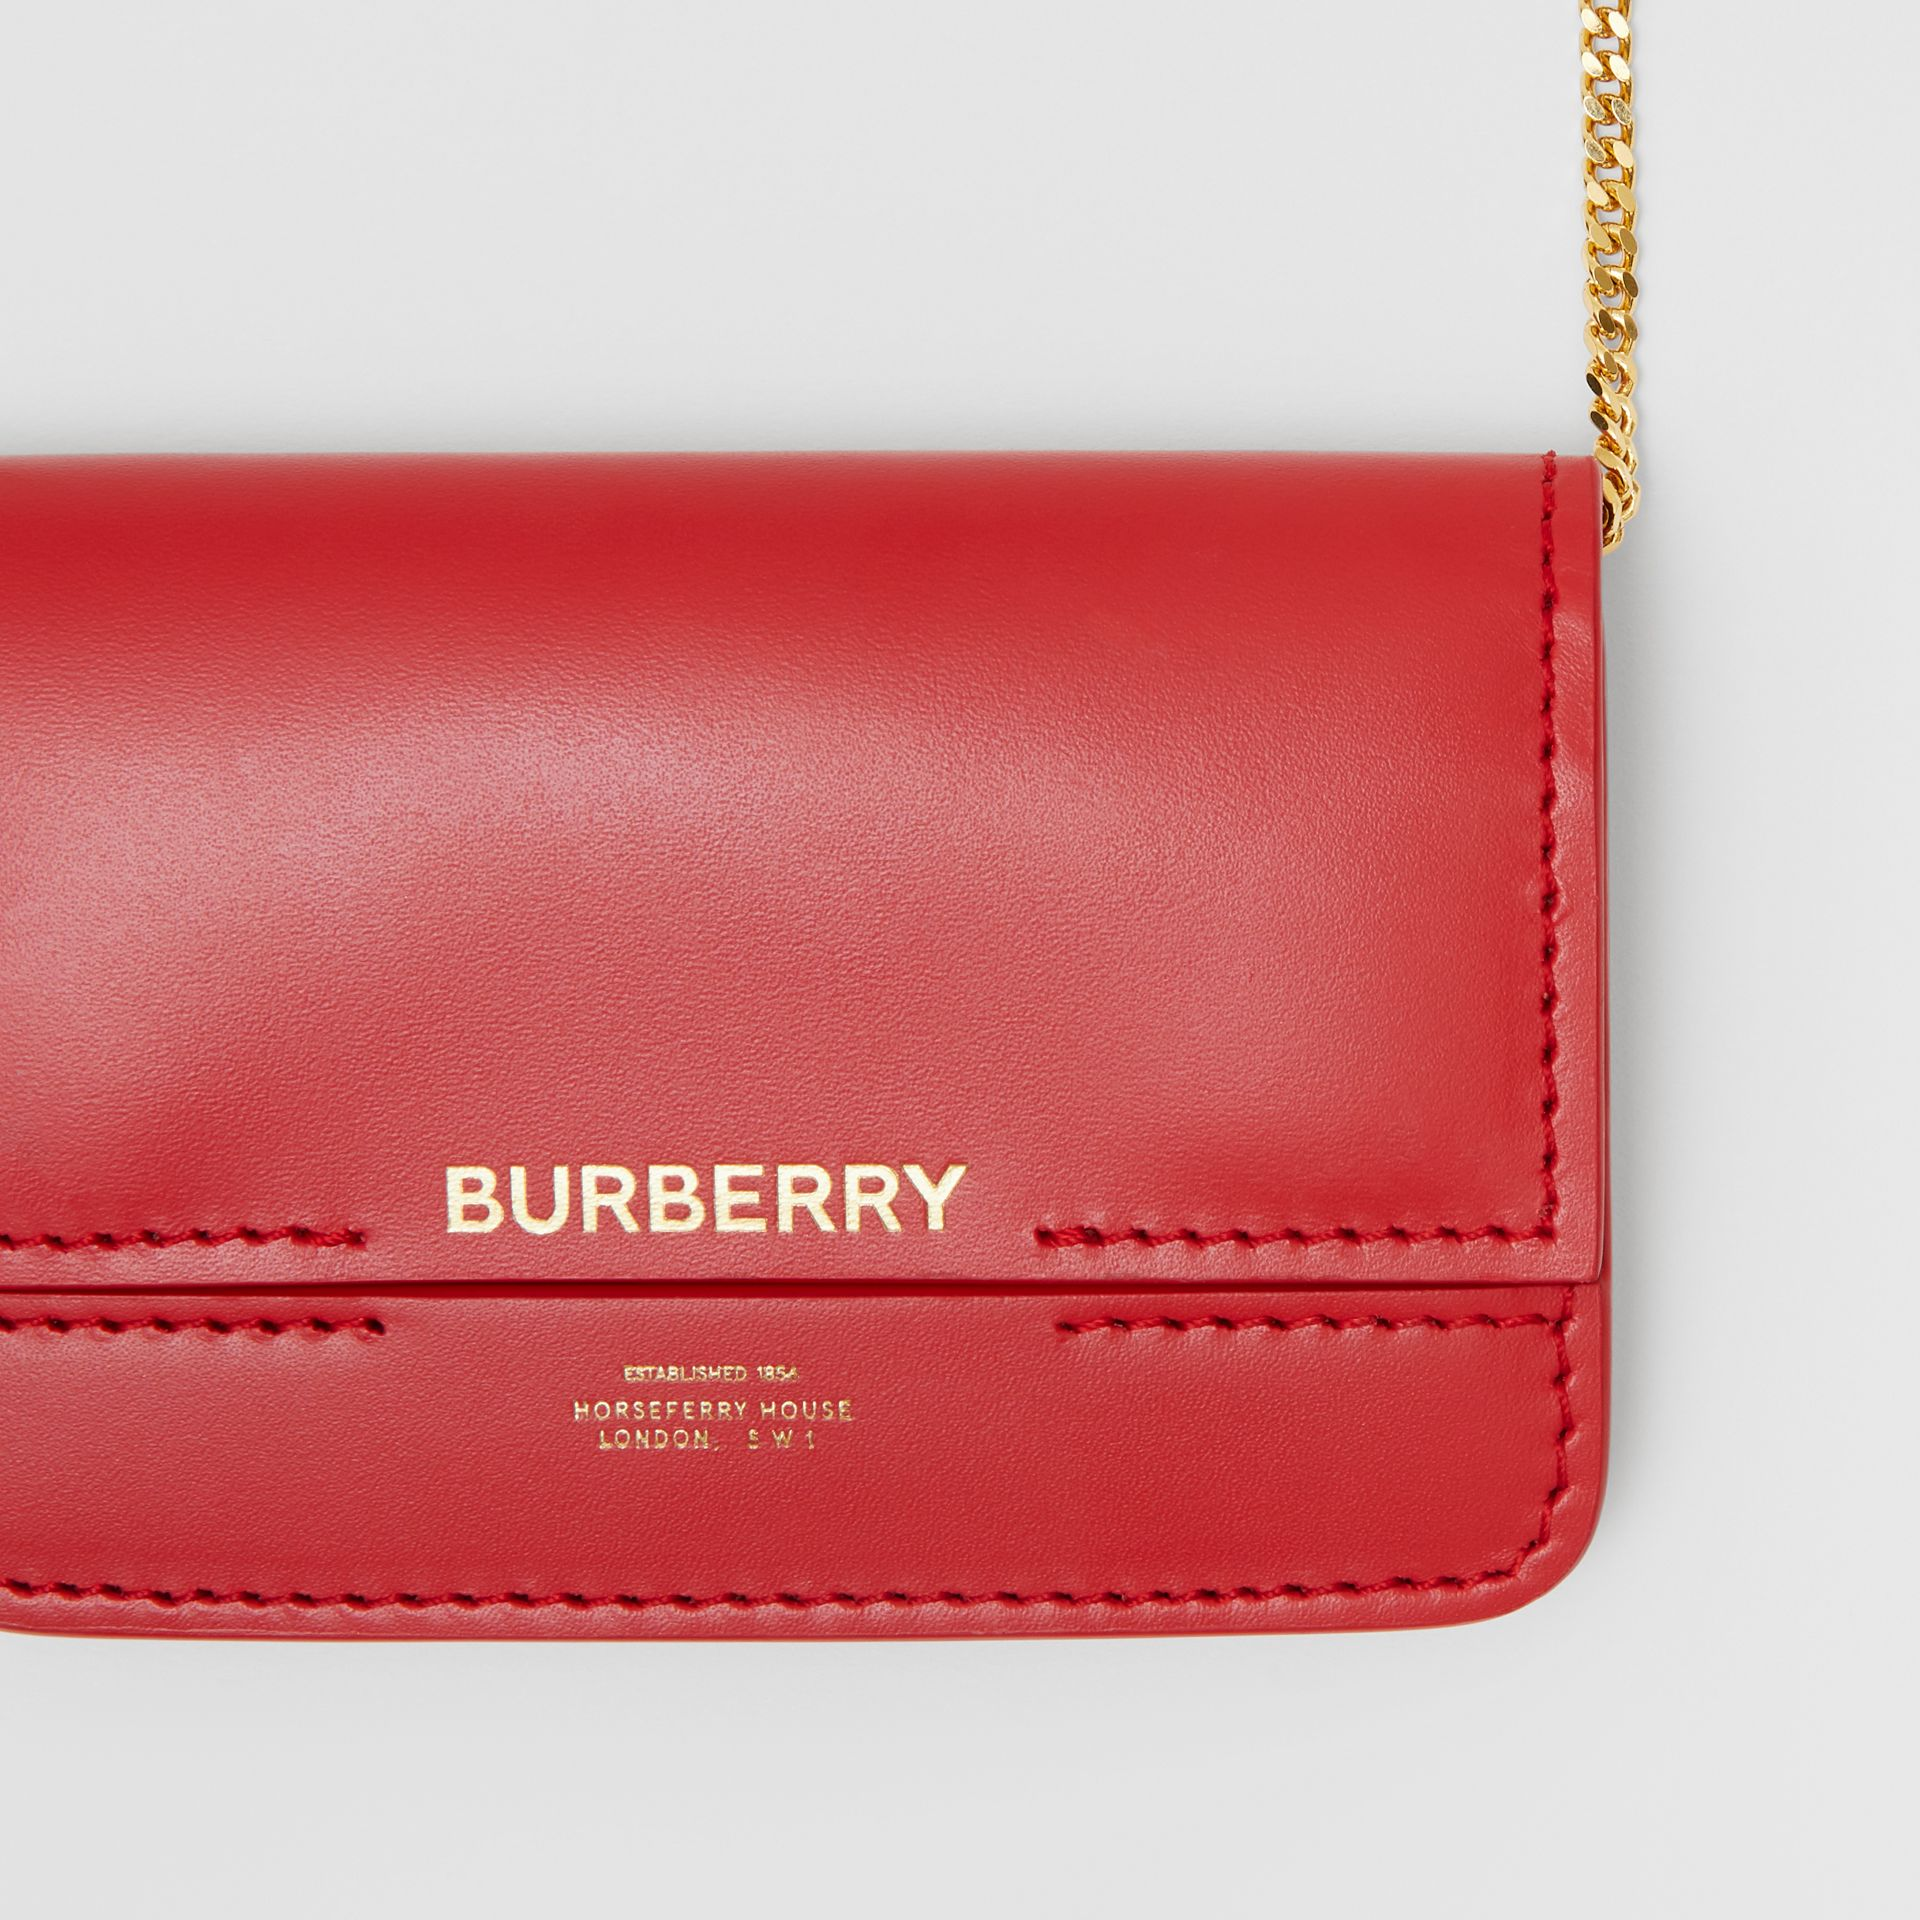 Two-tone Leather Card Case with Chain Strap in Red | Burberry - gallery image 1